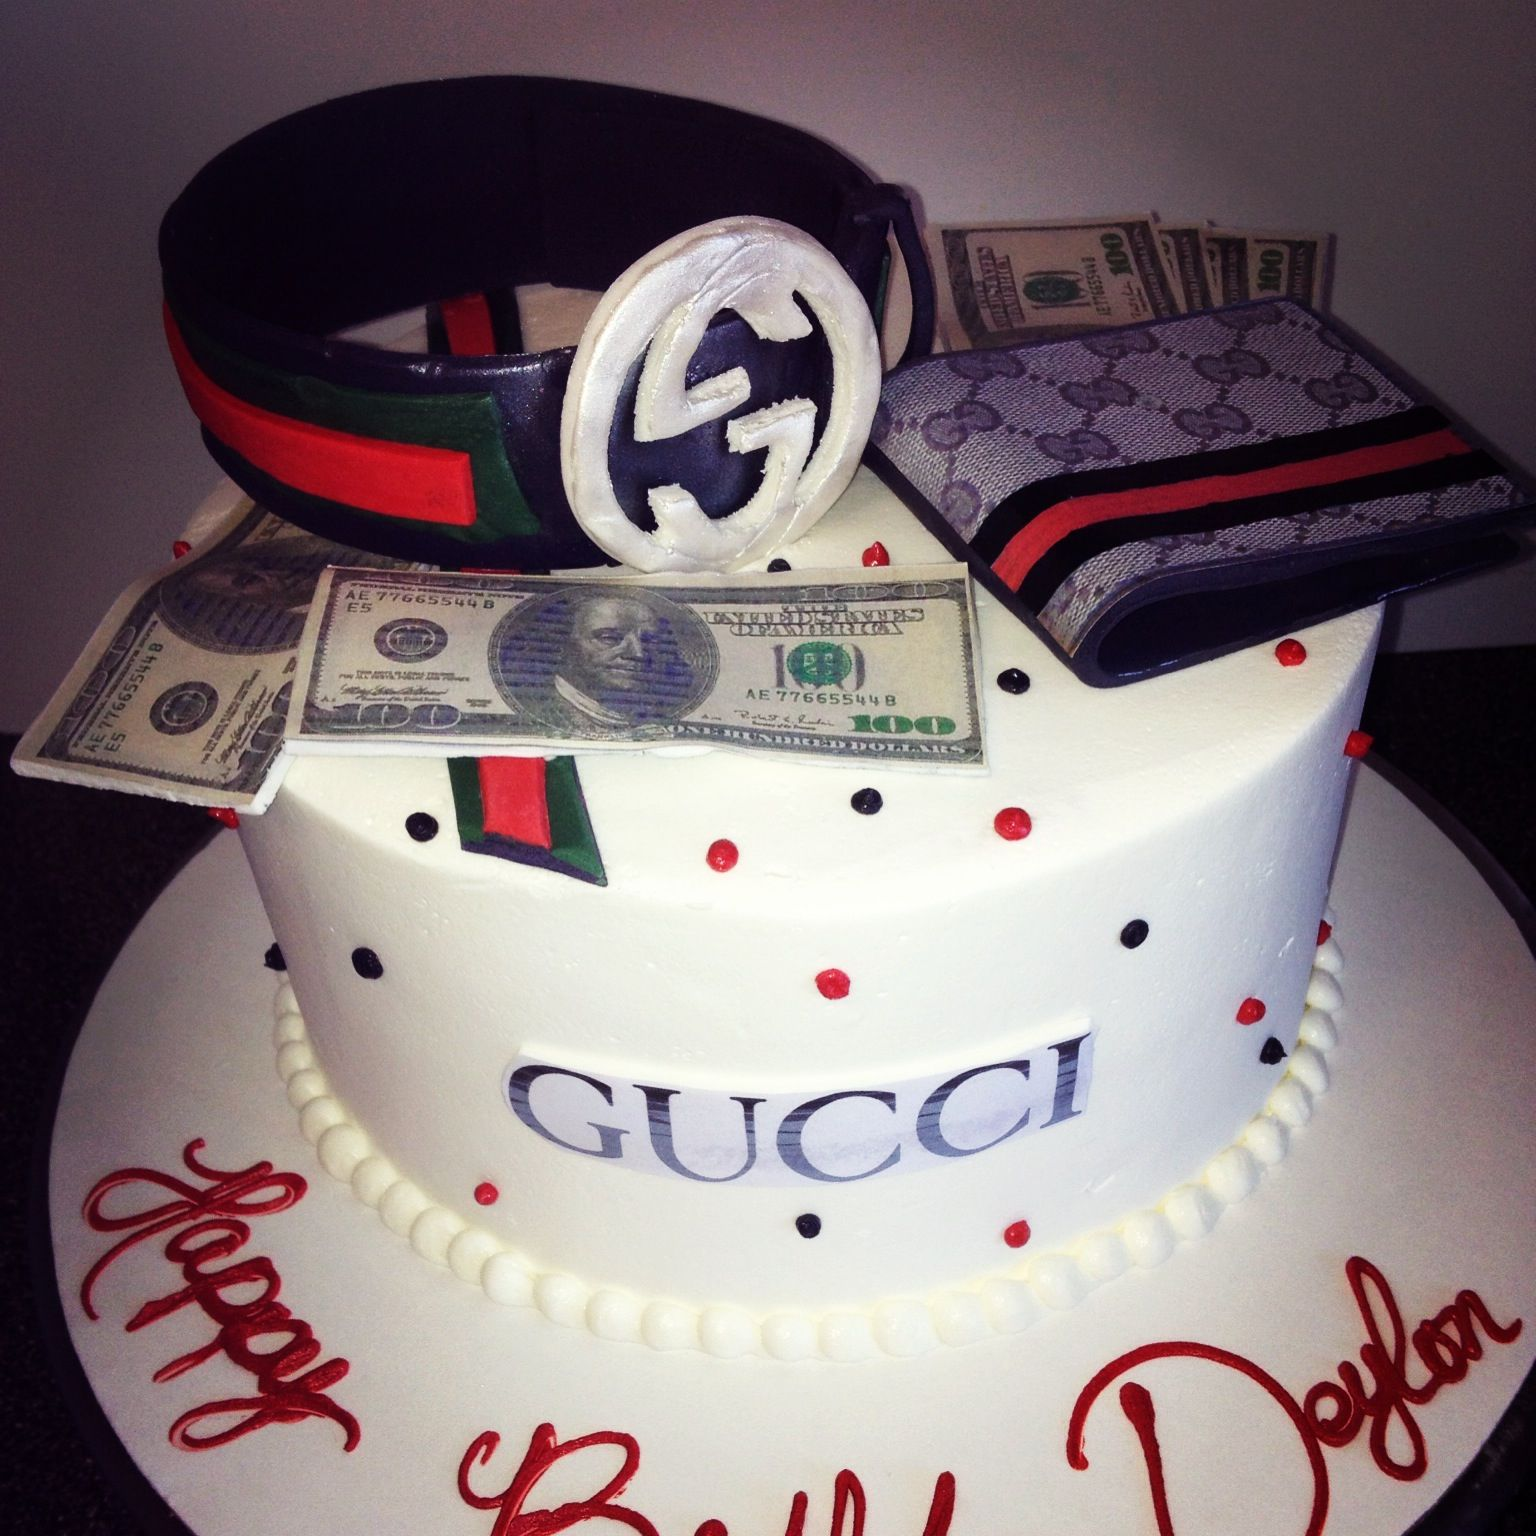 Remarkable Gucci Cake Gonna Need One Of These 3 10 14 With Images Birthday Cards Printable Trancafe Filternl